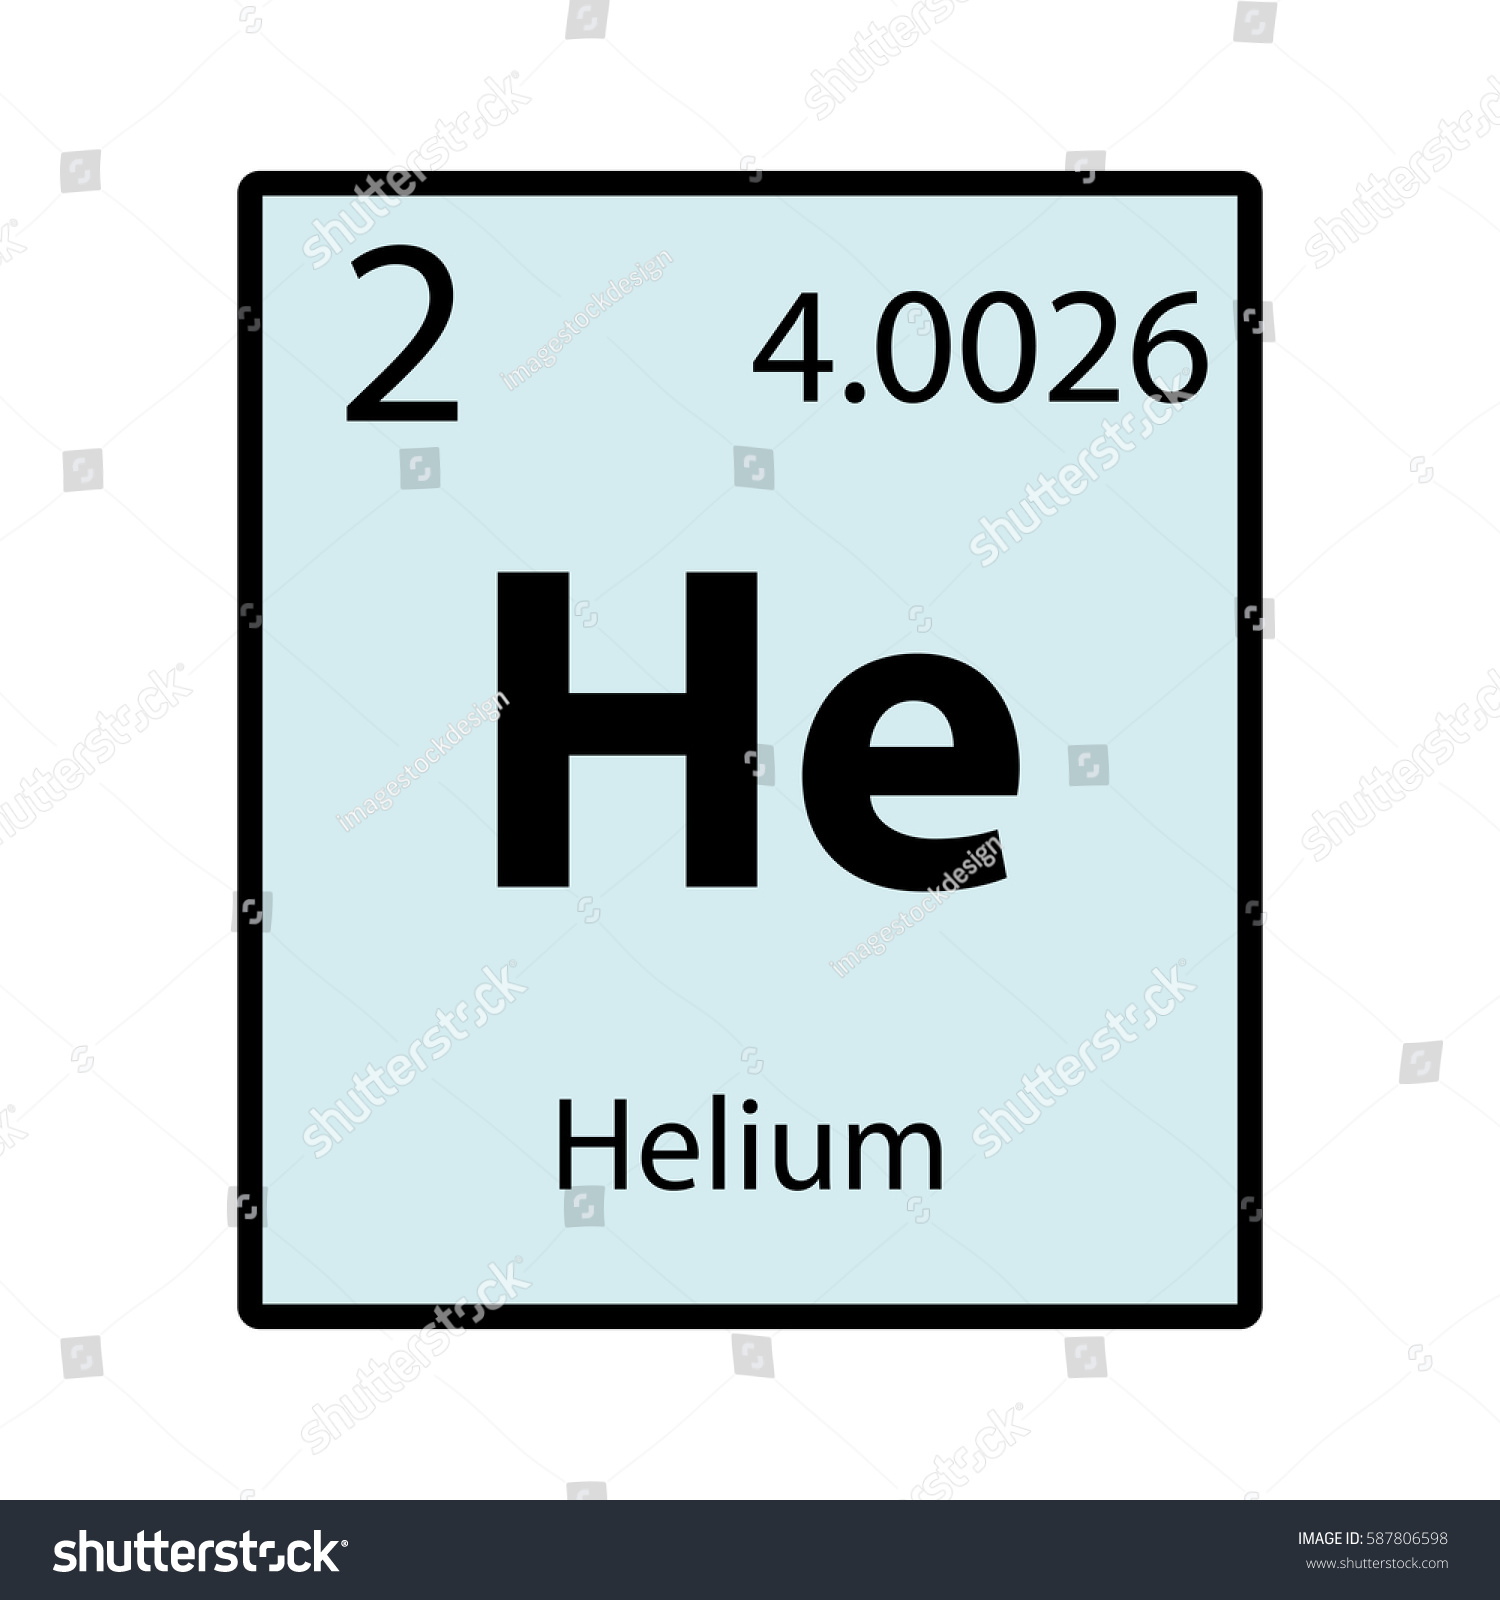 Helium symbol on periodic table images periodic table images what is the symbol for helium on the periodic table image helium periodic table element color gamestrikefo Images